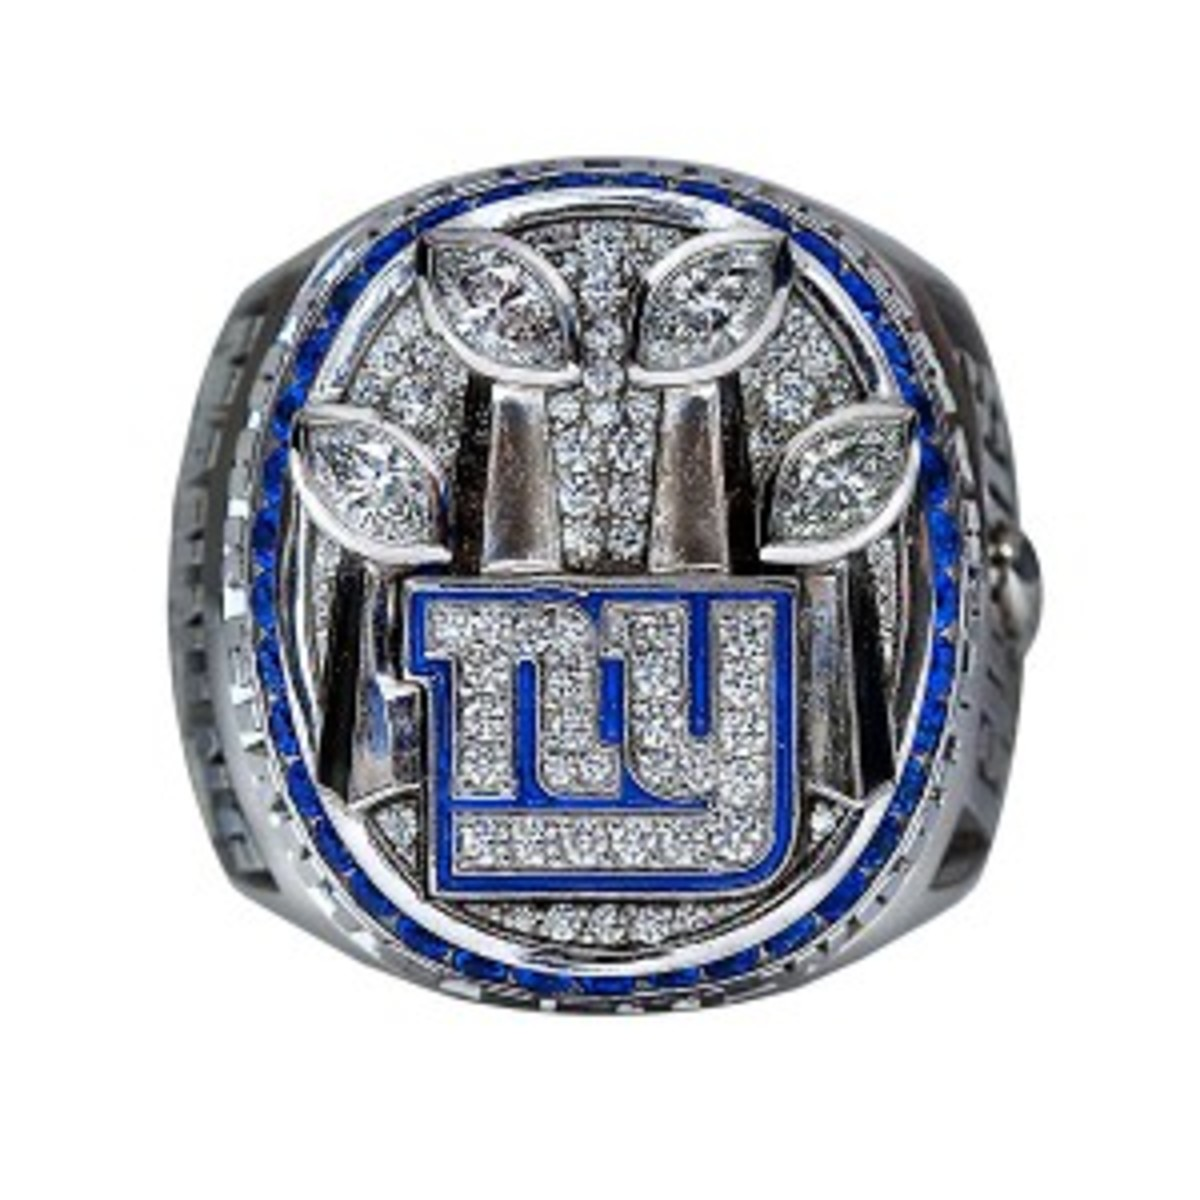 XLVI Super Bowl NFL Ring - New York Giants 2012